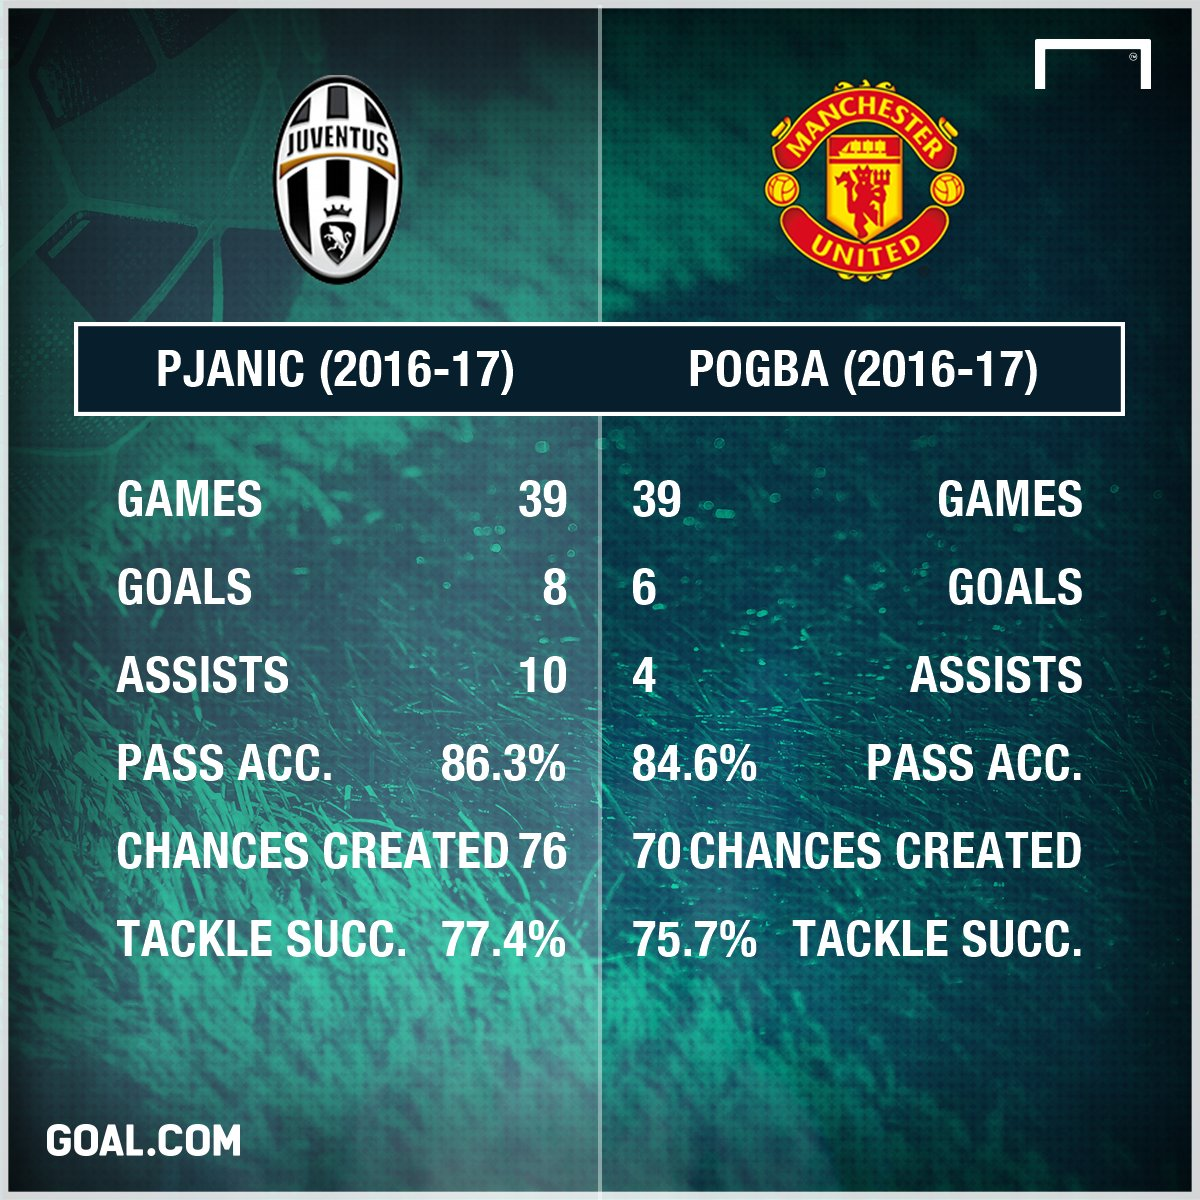 #Pjanic has proved to be an upgrade on #Pogba for #Juventus - and at a €73m profit!  http:// bit.ly/2p5Jzo0  &nbsp;   #ManUtd #SerieA<br>http://pic.twitter.com/slVGs0B913